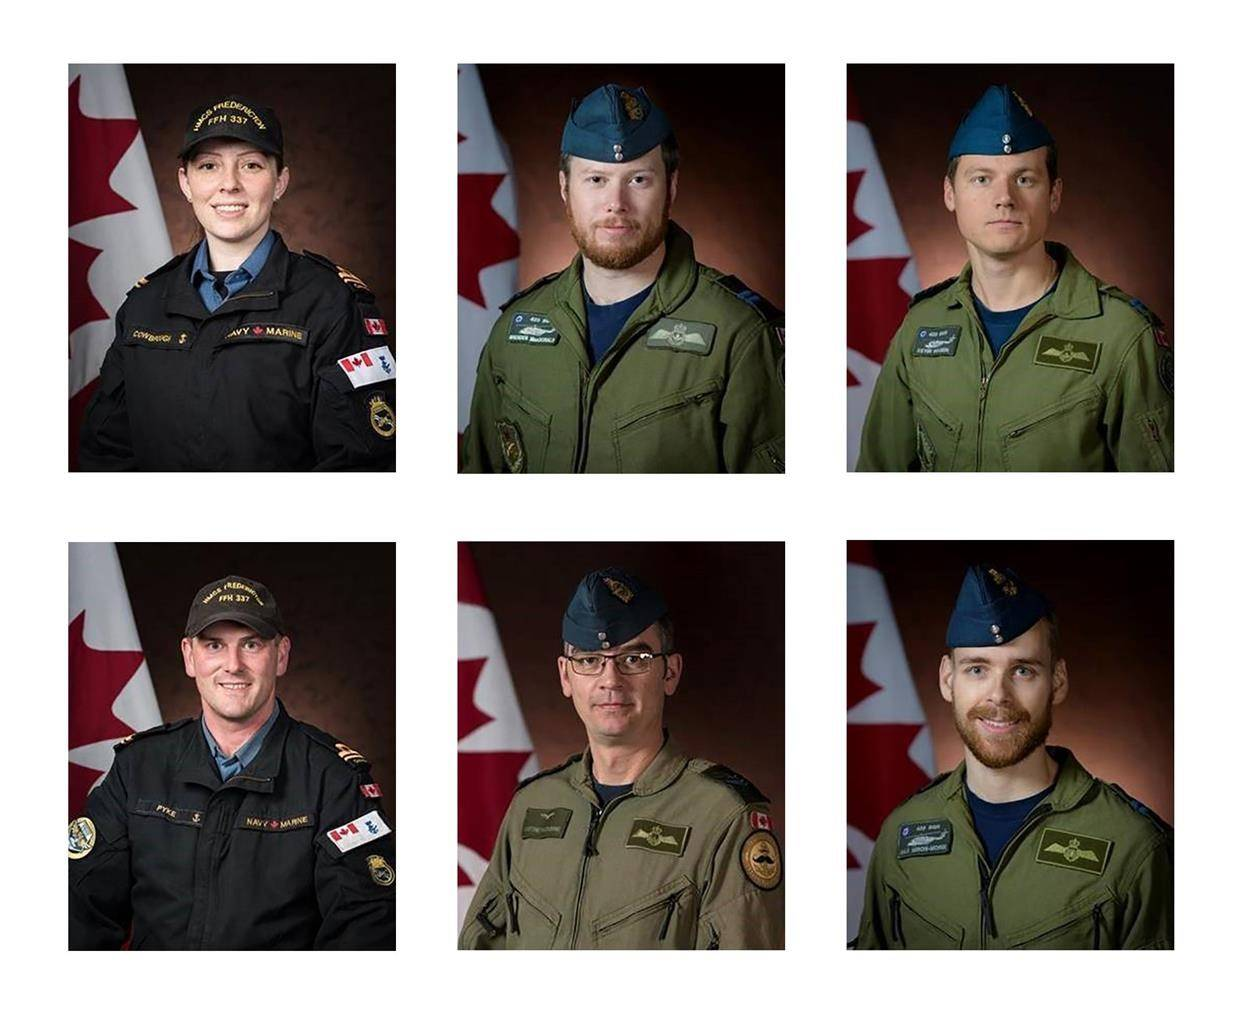 Canadian Armed Forces members (clockwise from top left) Sub-Lt. Abbigail Cowbrough, Capt. Brenden MacDonald, Capt. Kevin Hagen, Capt. Maxime Miron-Morin, Master Cpl. Matthew Cousins and Sub-Lt. Matthew Pyke are shown in a Department of National Defence handout photos. All were aboard a Cyclone helicopter which crashed into the Ionian Sea off the coast of Greece on April 29. THE CANADIAN PRESS/HO-Department of National Defence MANDATORY CREDIT